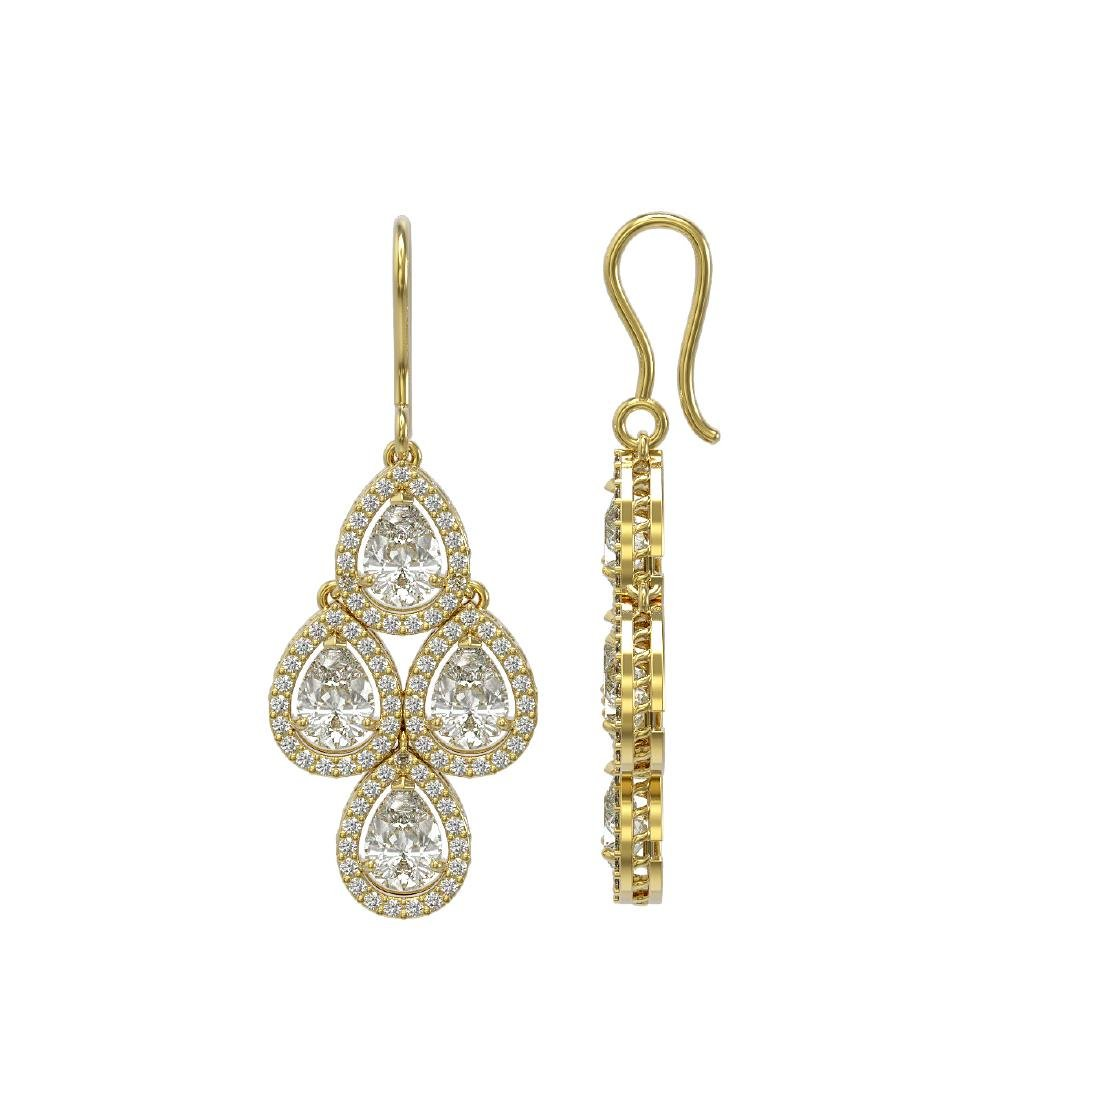 5.22 CTW Pear Diamond Designer Earrings 18K Yellow Gold - 2